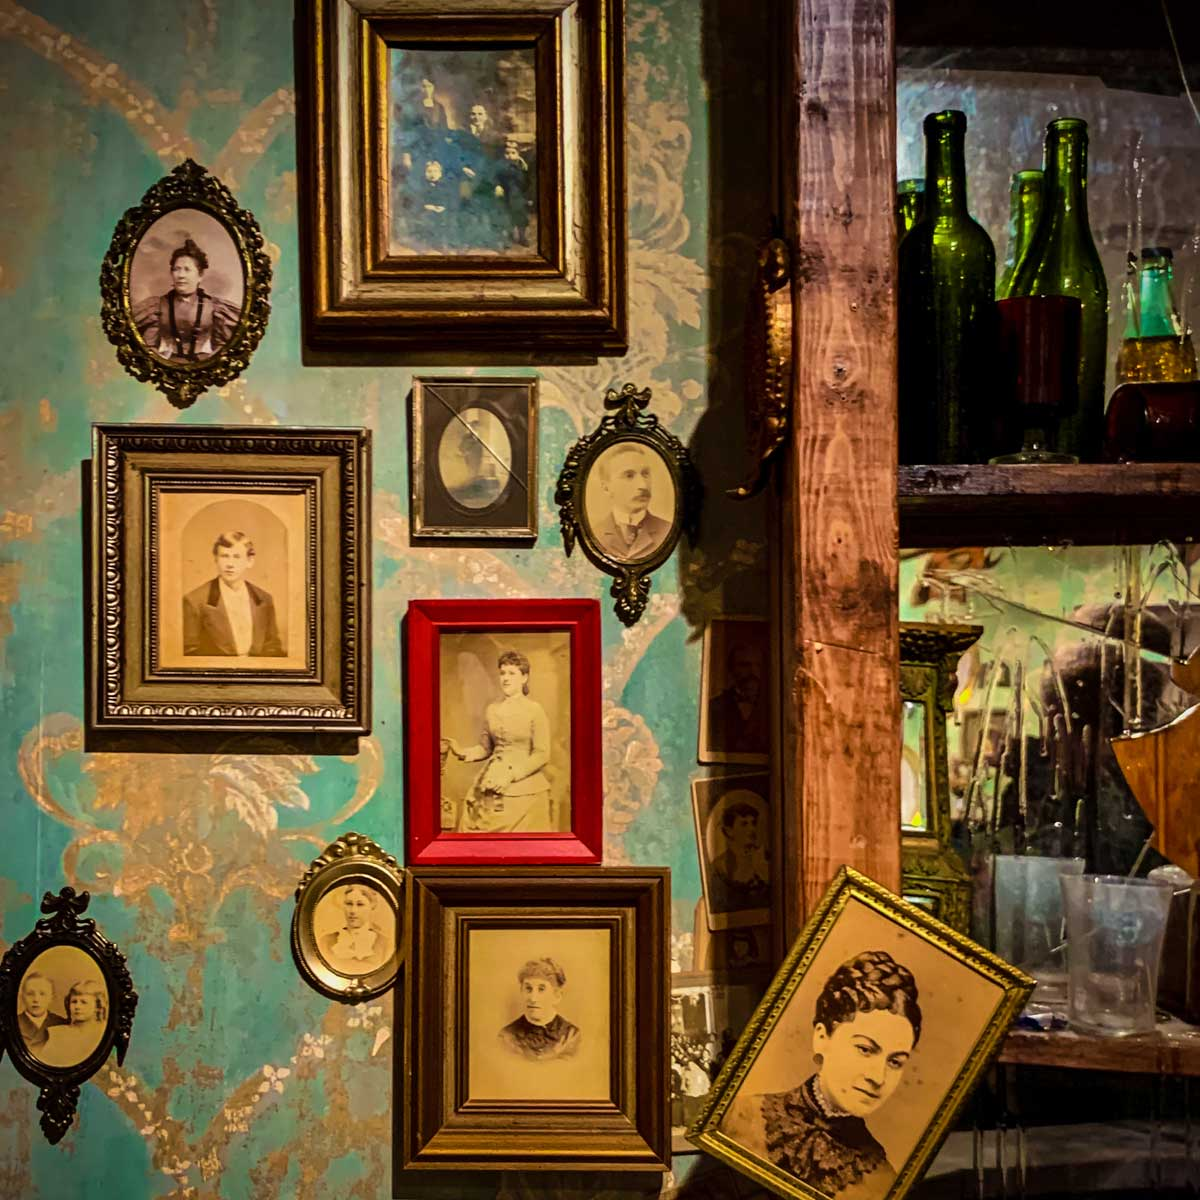 Framed portraits near the bar in the American Prohibition Museum